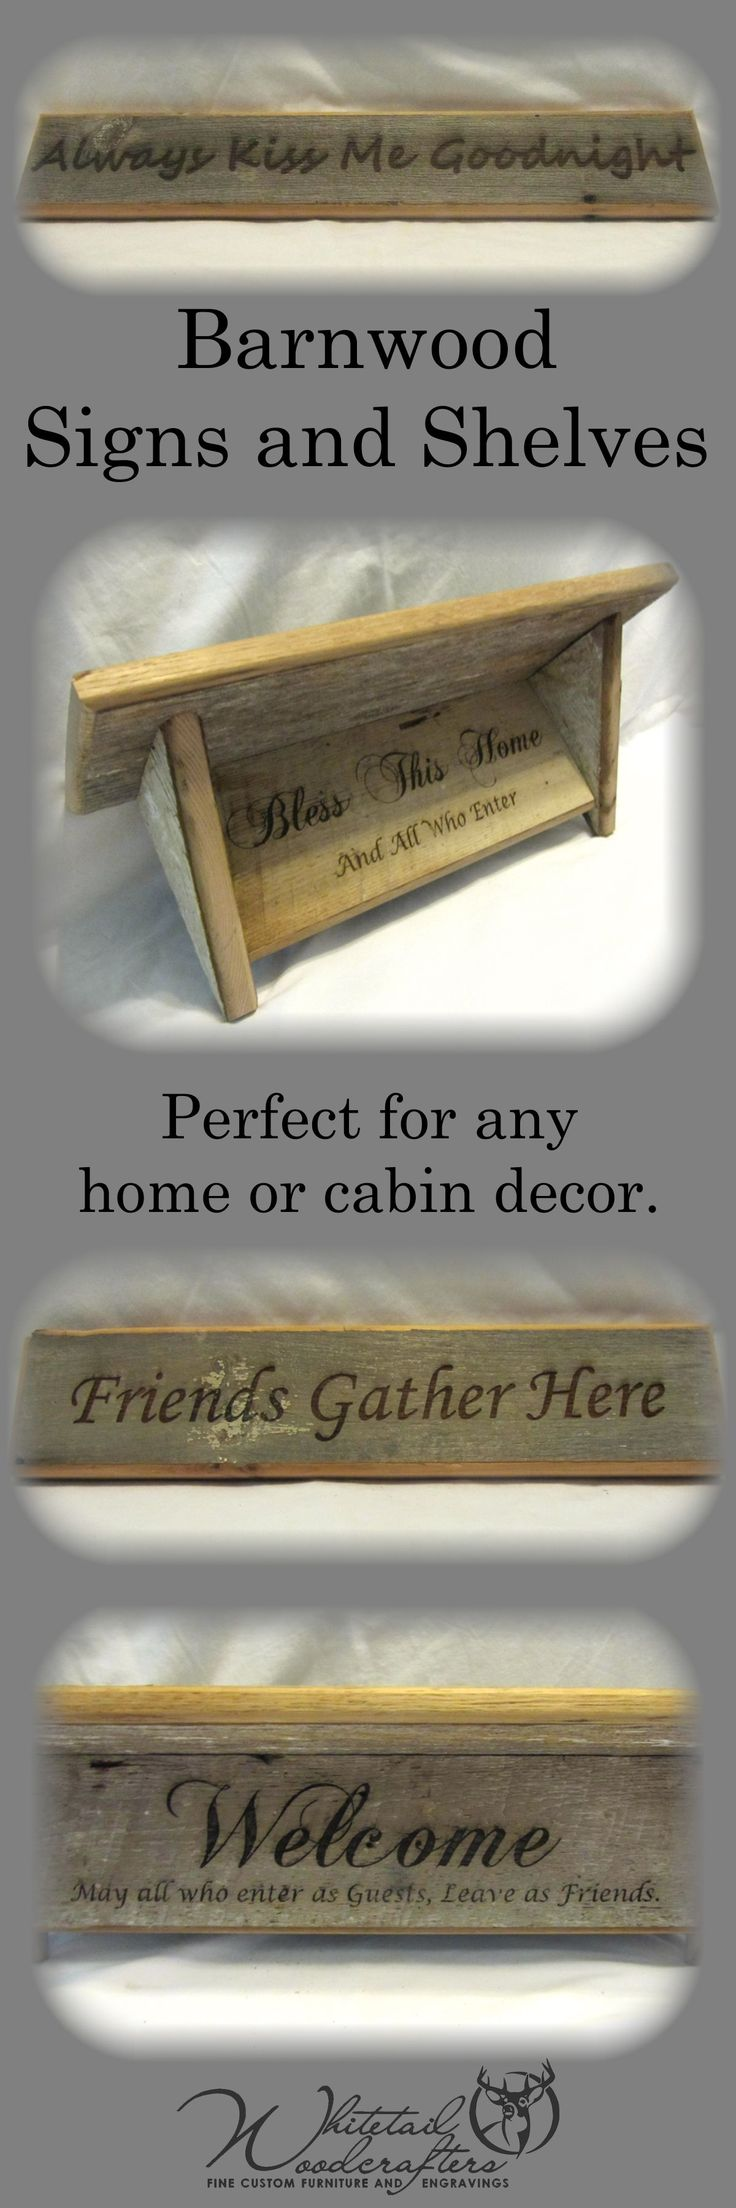 Our barnwood products are perfect to add some rustic decor to your home or cabin! From shelves to doortoppers, we are sure to have exactly what you are looking for! We can custom engrave any quote or saying to any of our barnwood products!